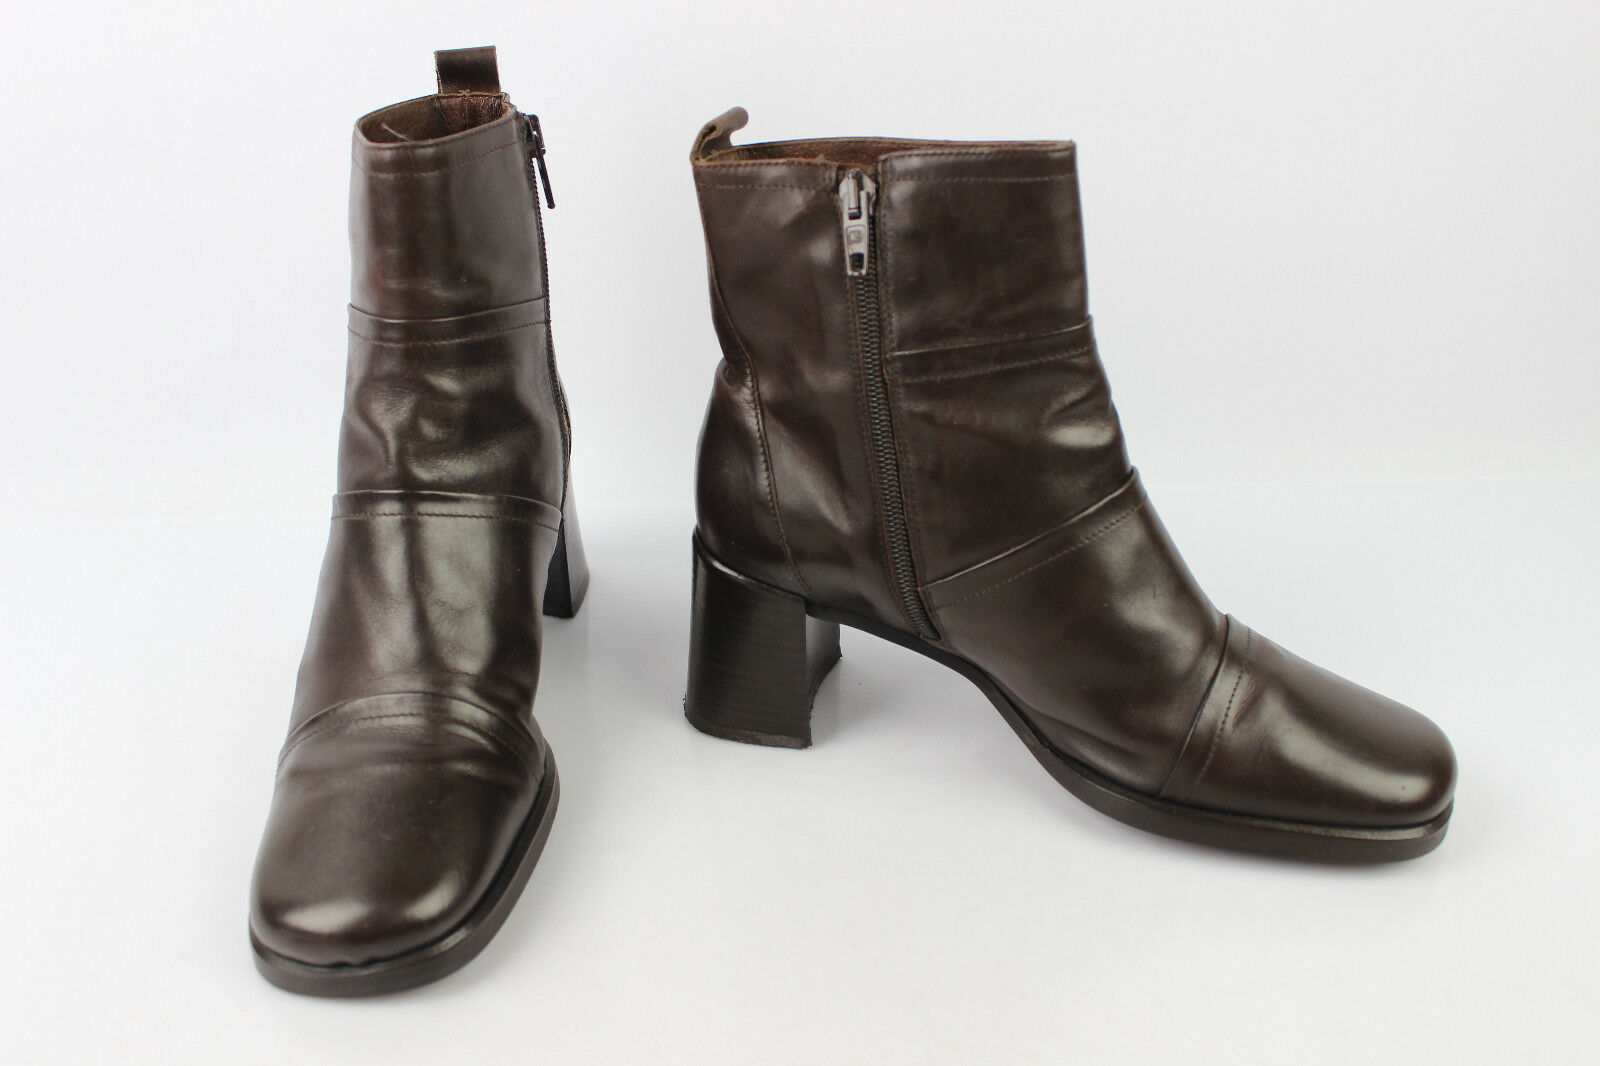 VINTAGE Boots SAN MARINA Brown Leather Leather Leather T 37 VERY GOOD CONDITION 45568d